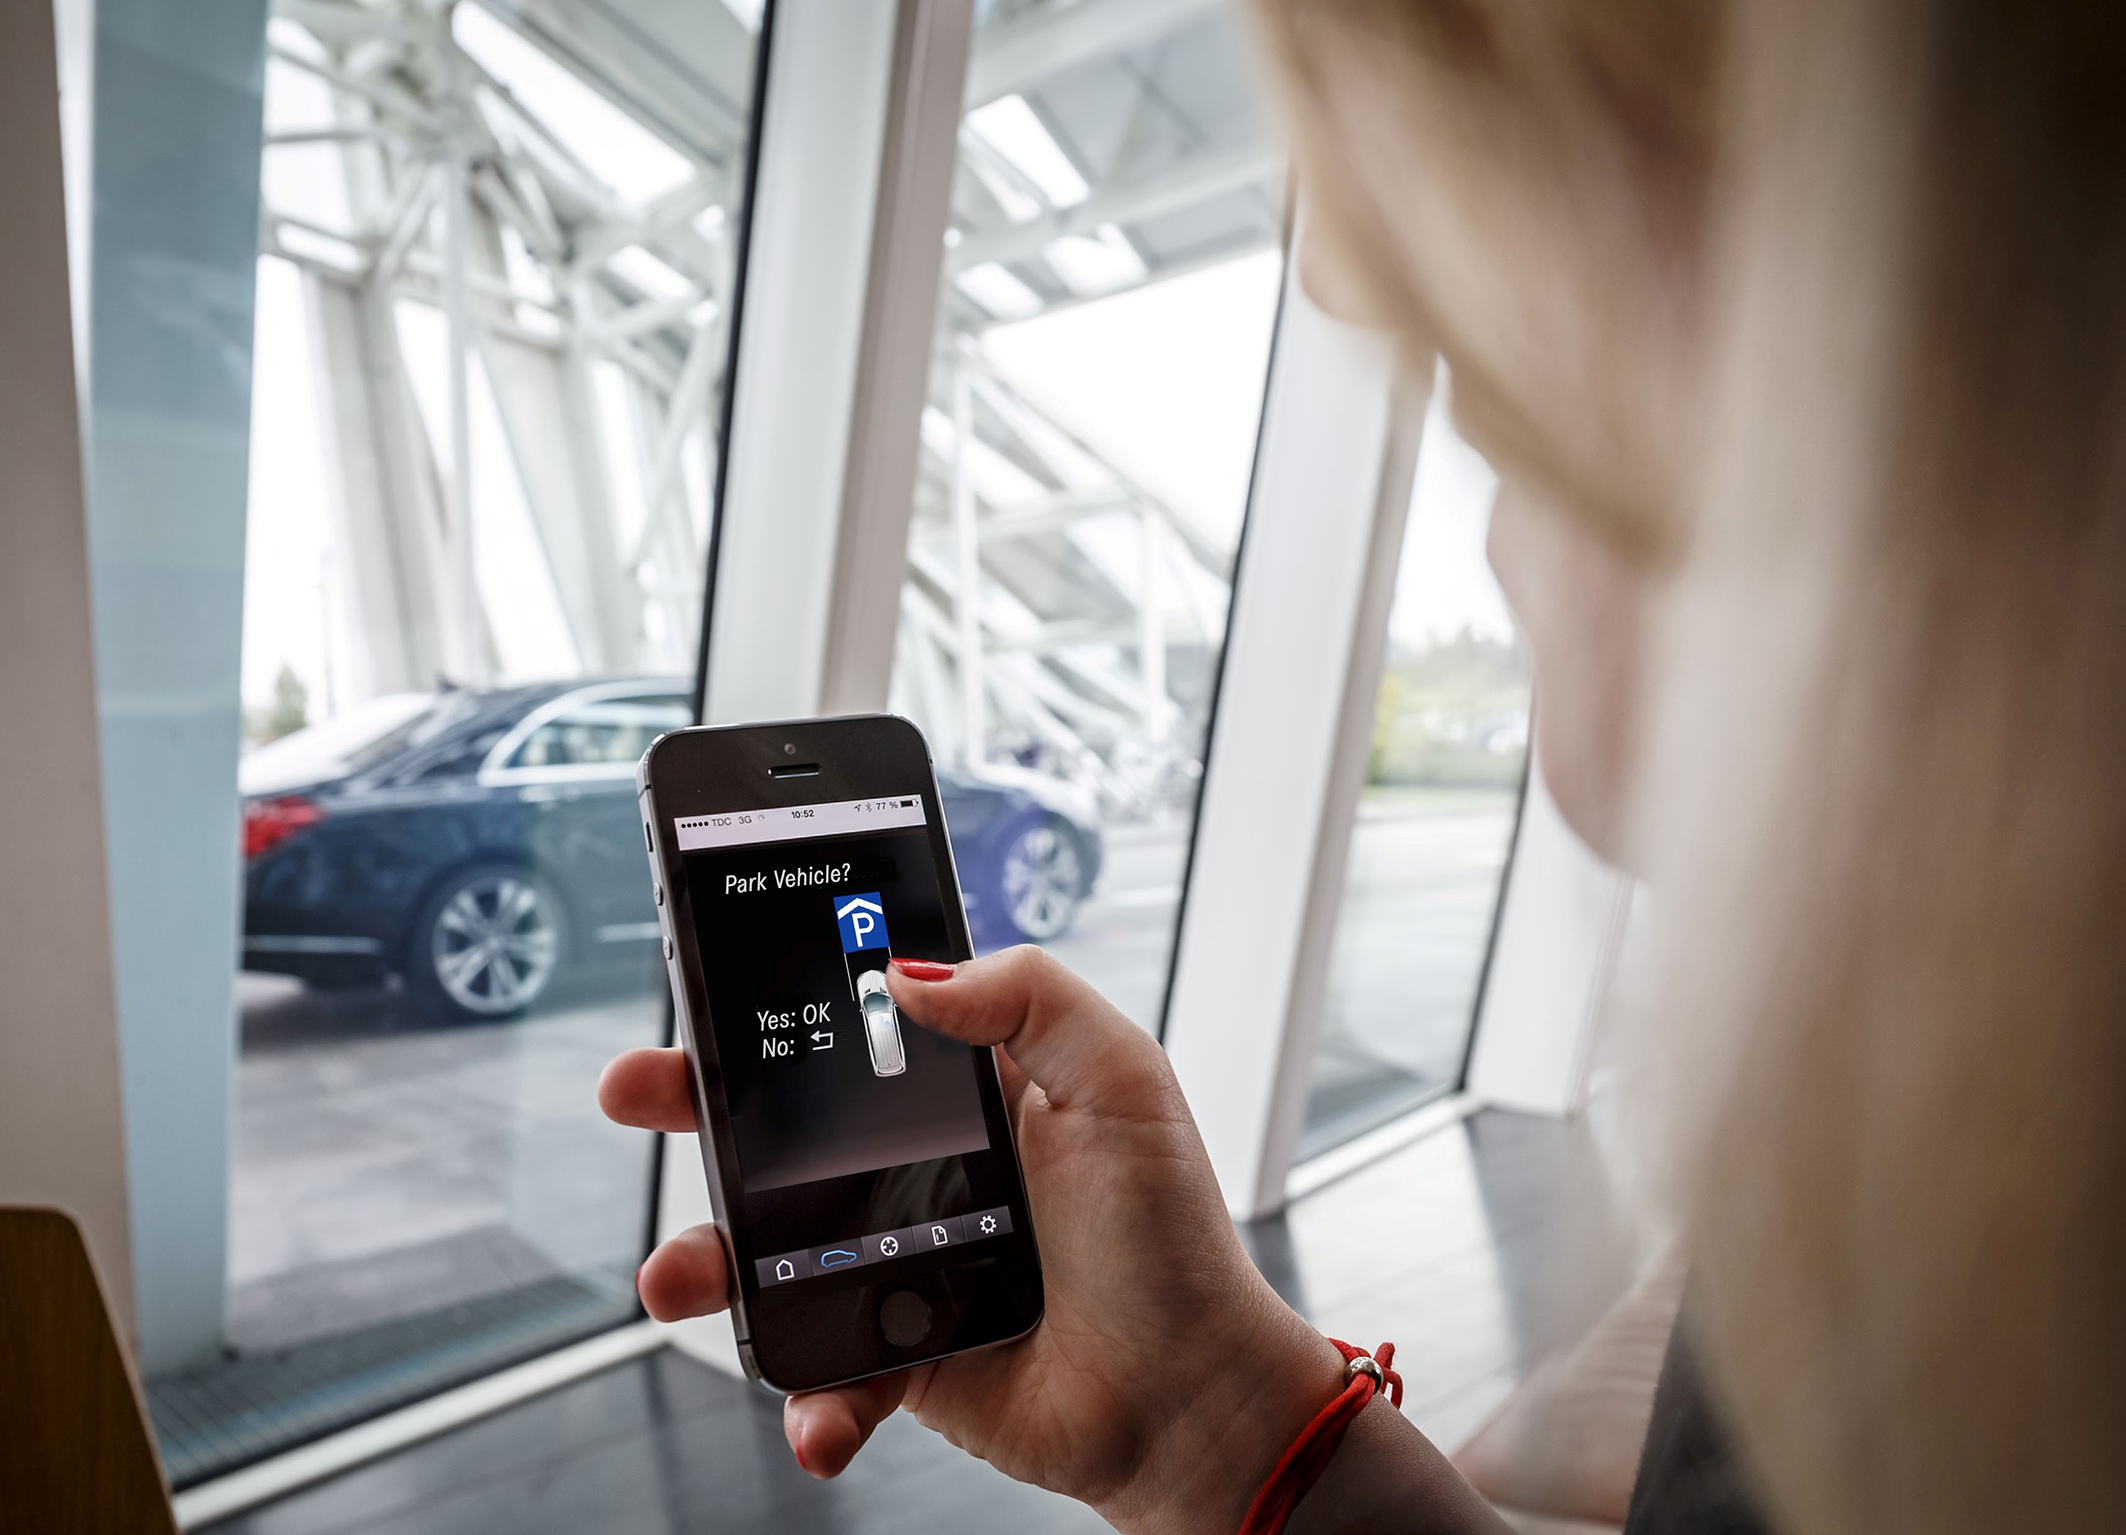 Bosch, Daimler, and car2go agreed in June 2015 to develop technology that will allow cars to automatically drive to a pick-up point via a smartphone app.